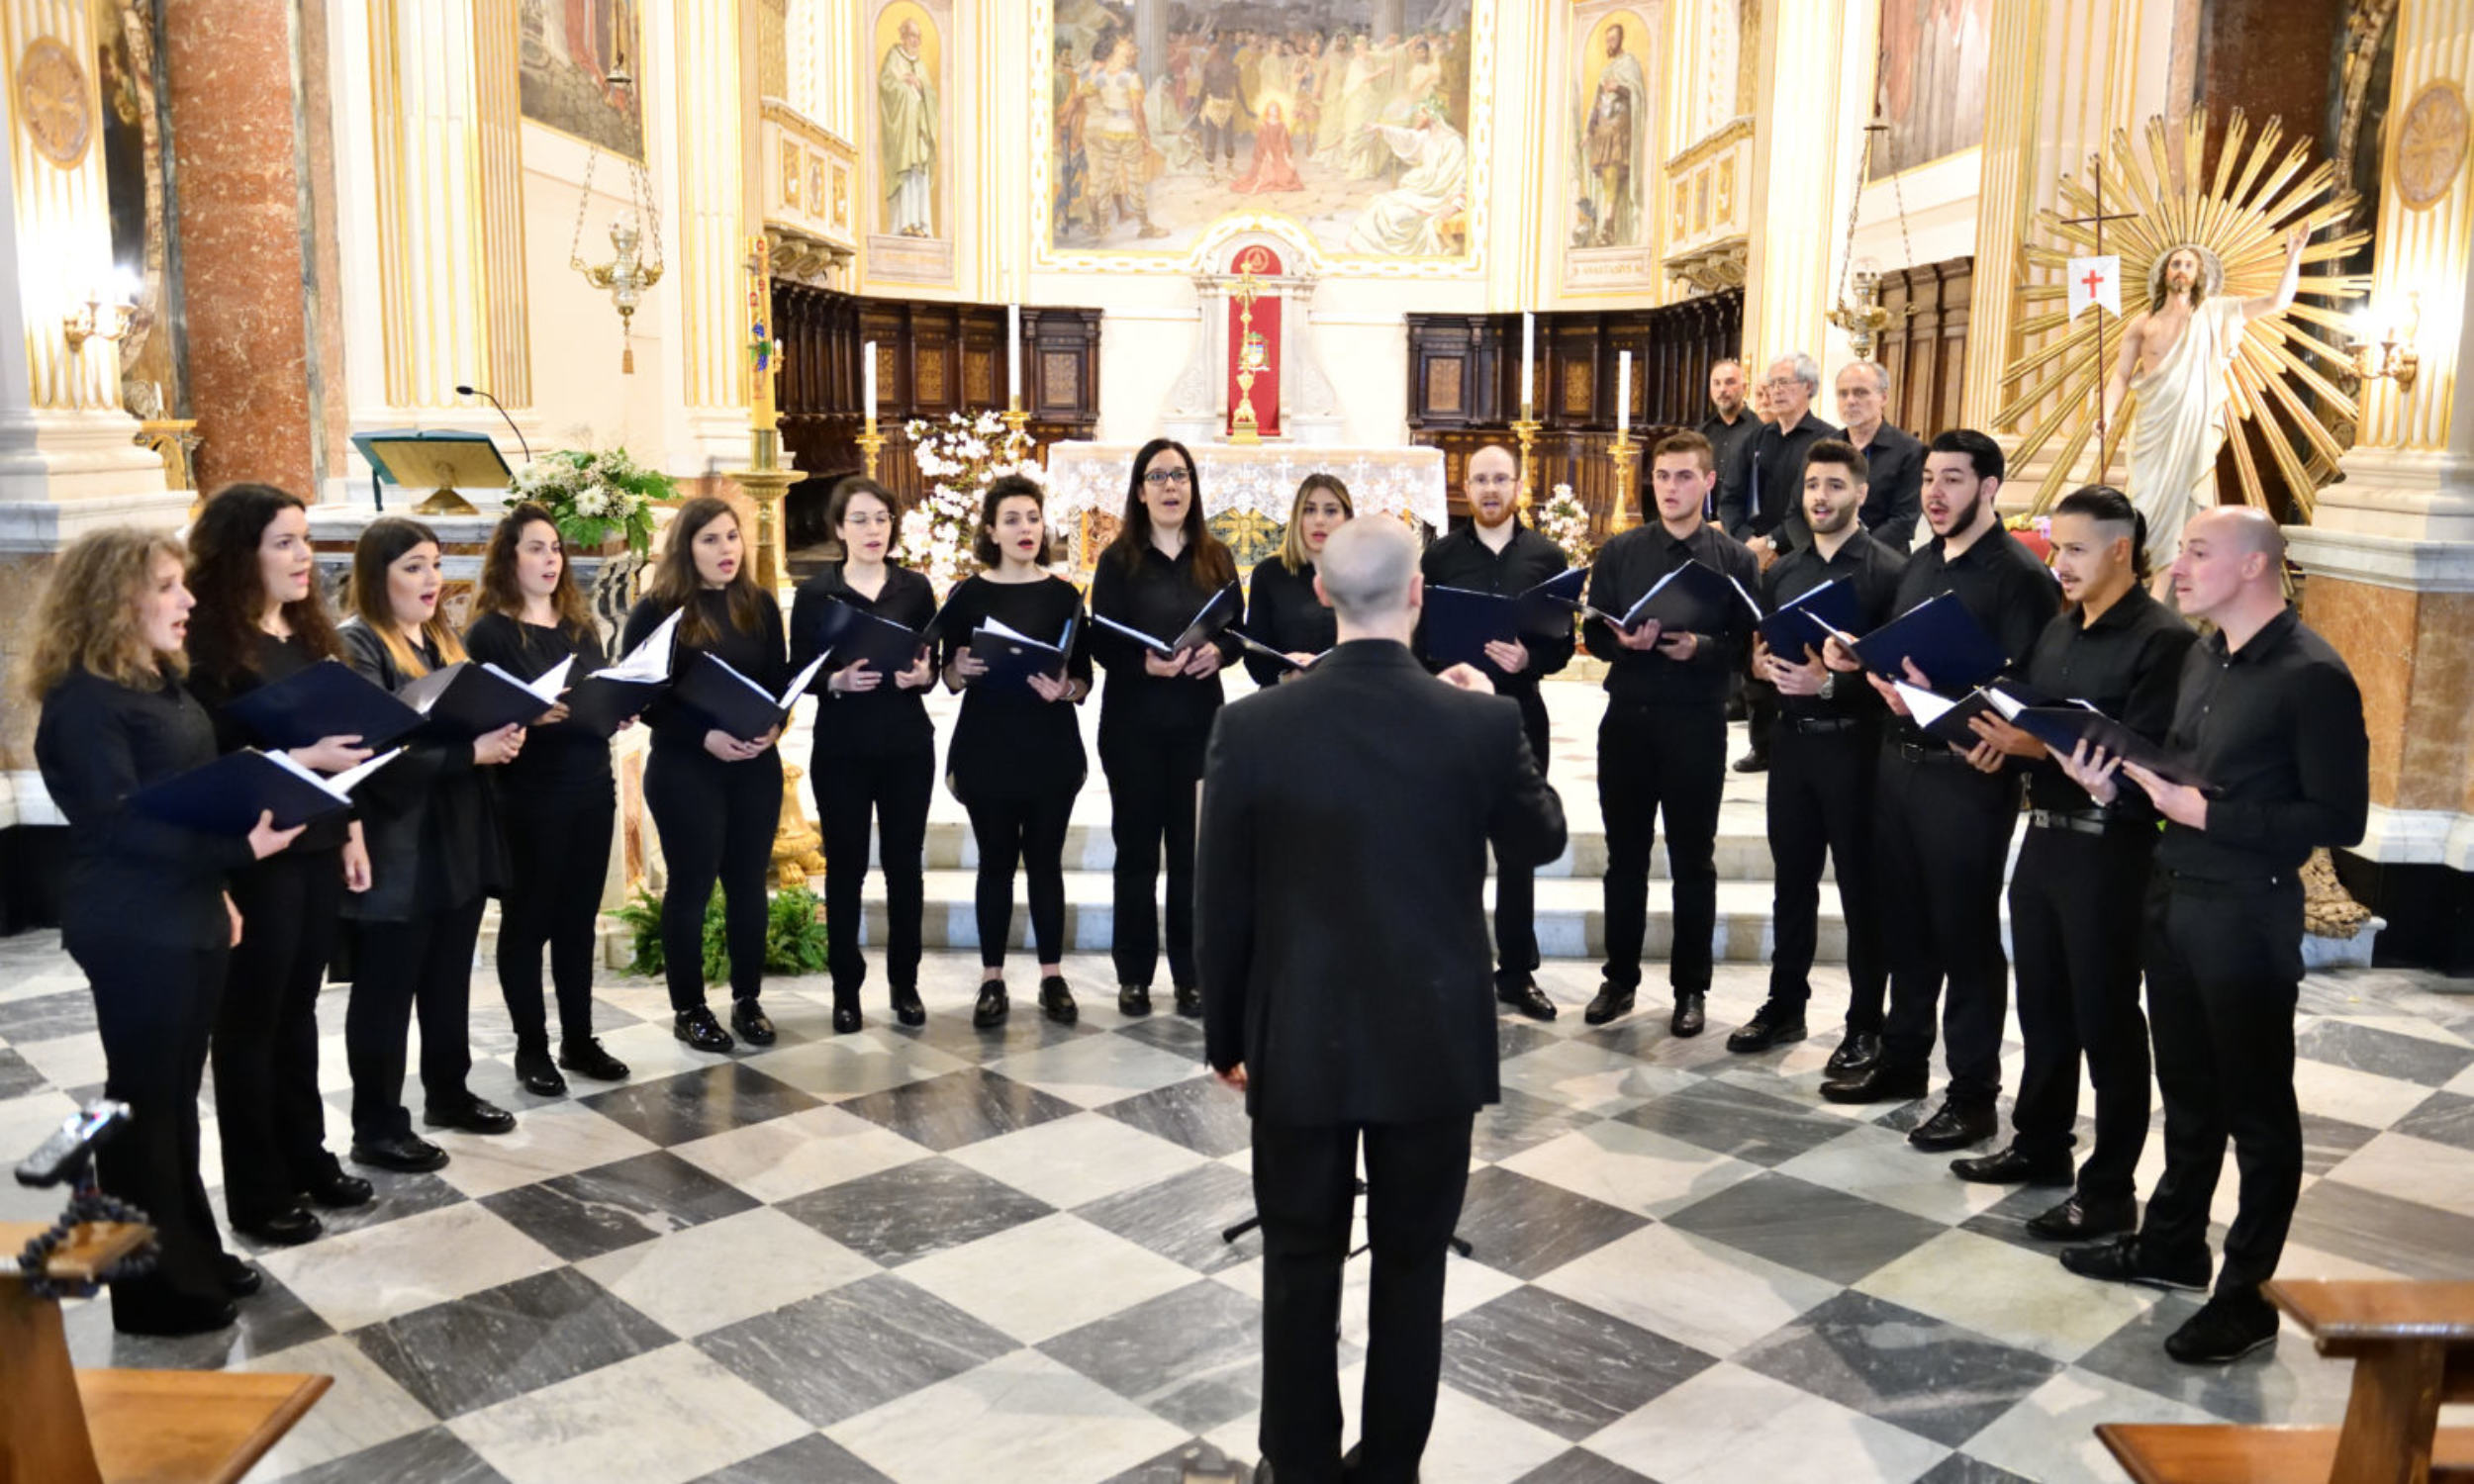 Sing with a local choir at Palestrina s Cathedral